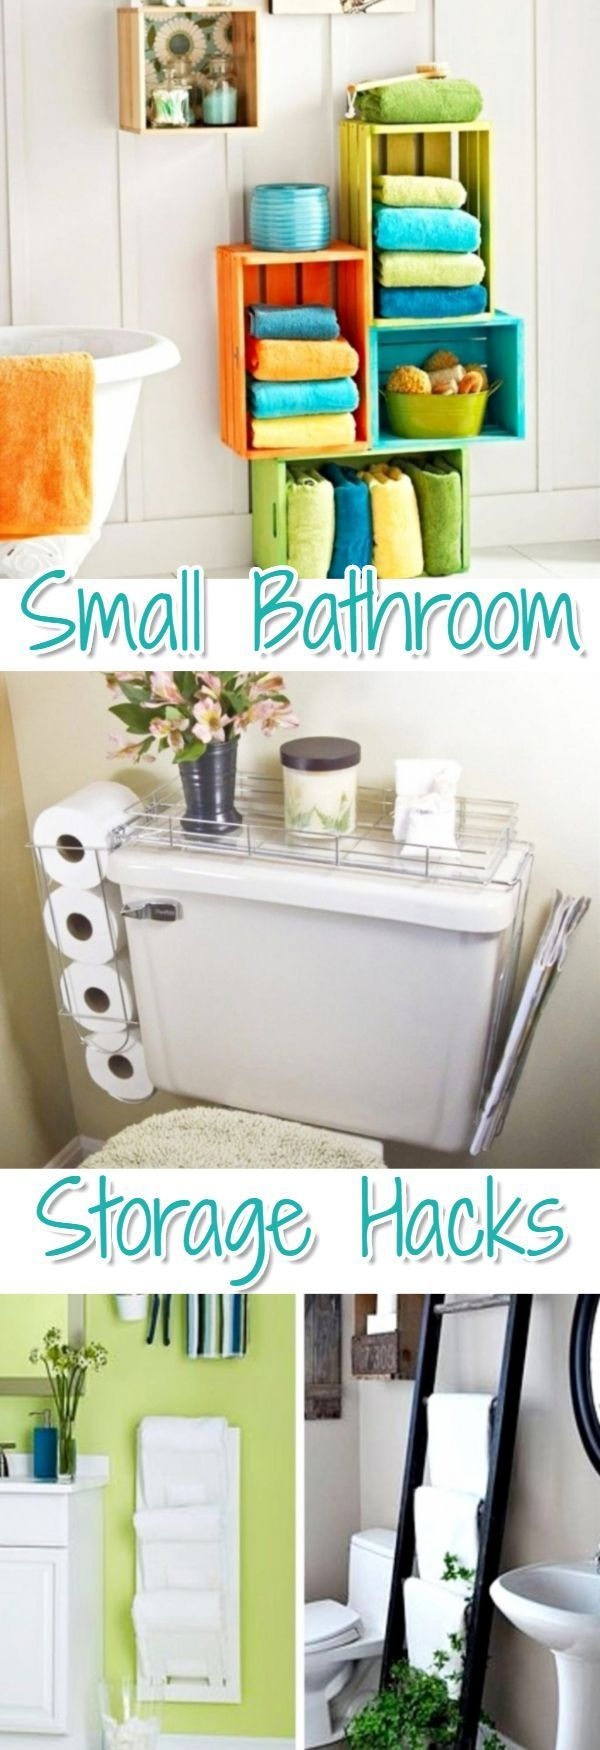 38+ Creative Storage Solutions for Small Spaces (Awesome DIY Ideas ...